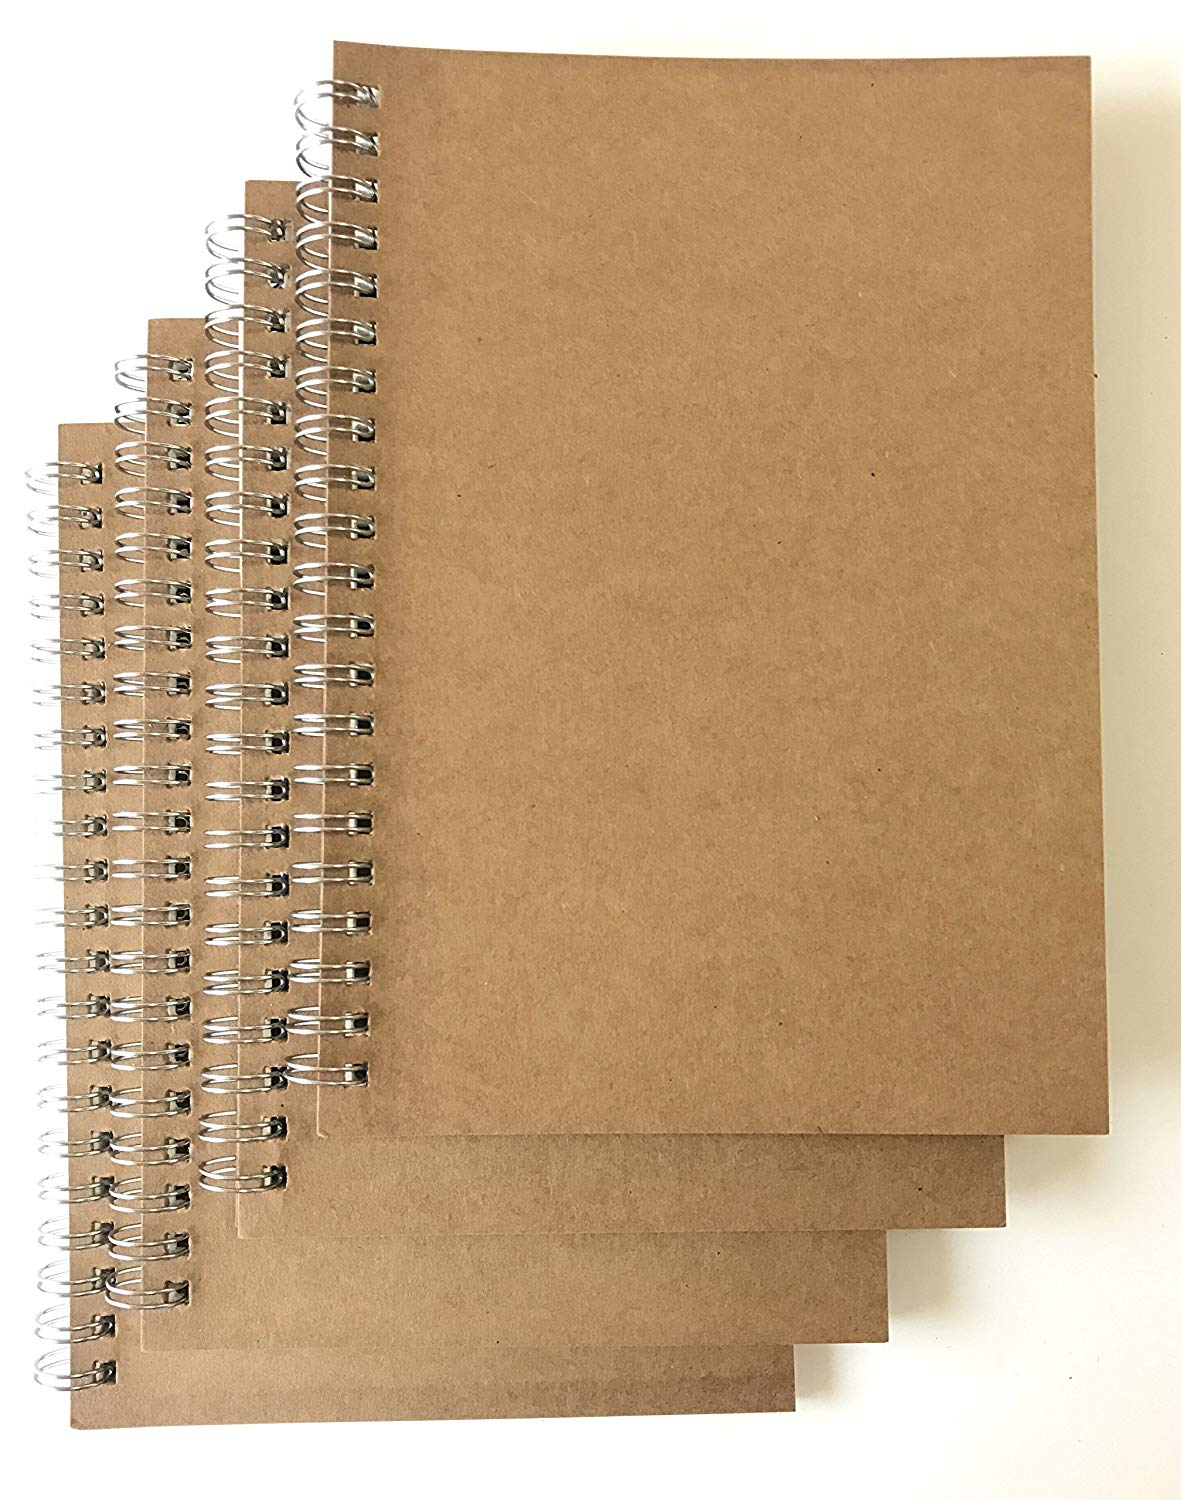 cheap 5 x 5 graph paper find 5 x 5 graph paper deals on line at